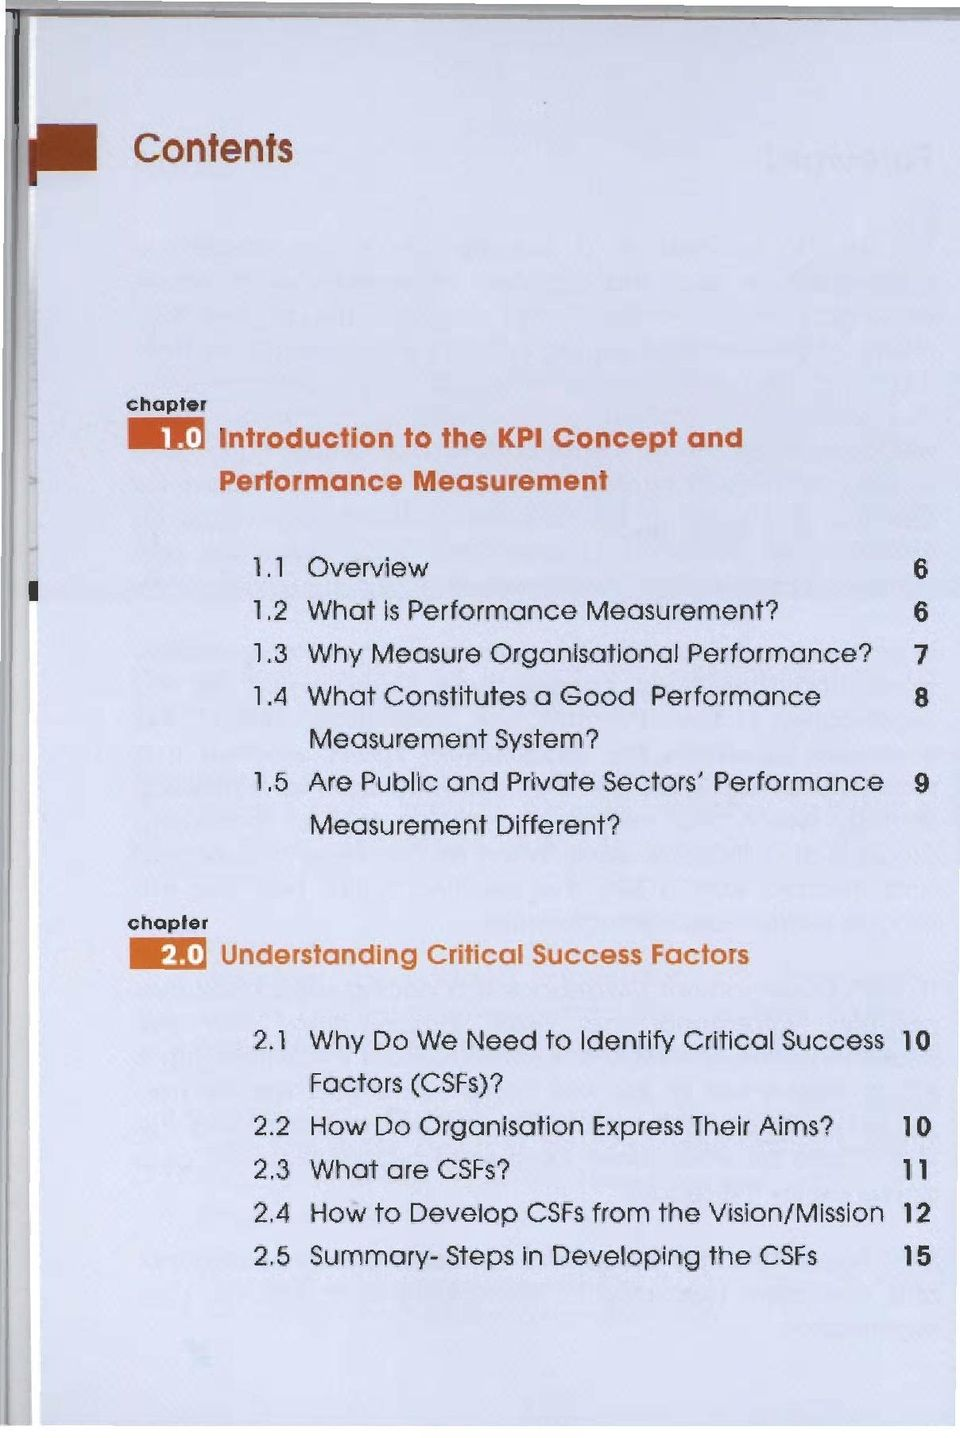 5 Are Public and Prhrote Sectors' Performance 9 Measurement Dlffemt? 2.